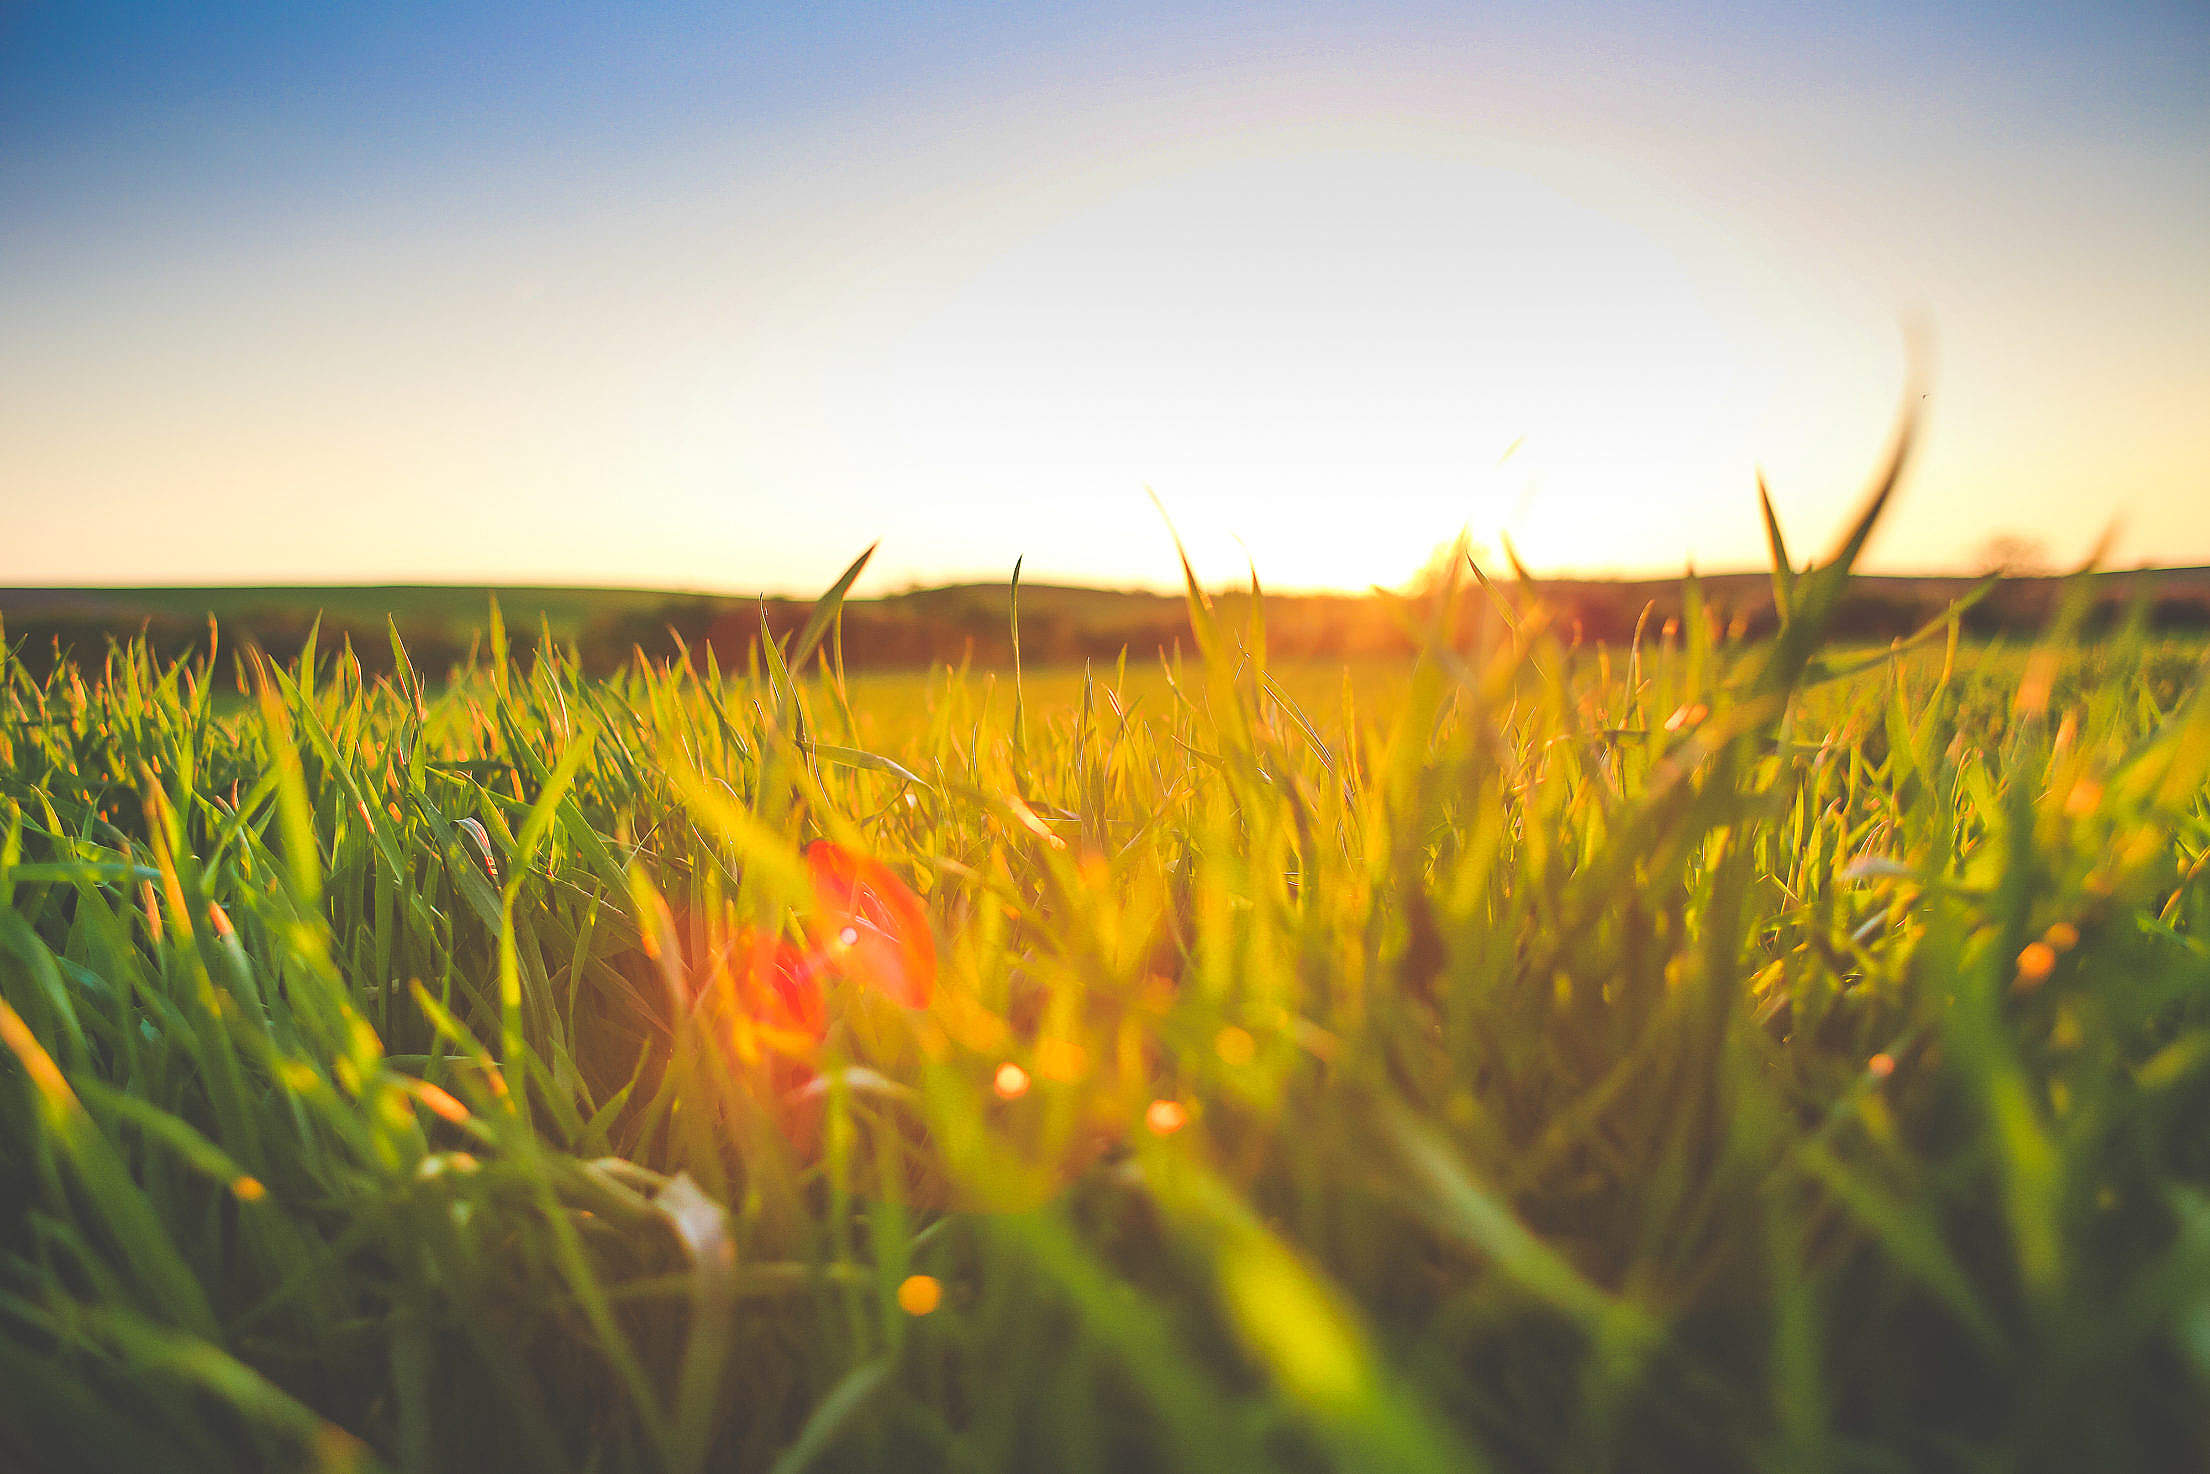 Sunset in Grass Free Stock Photo